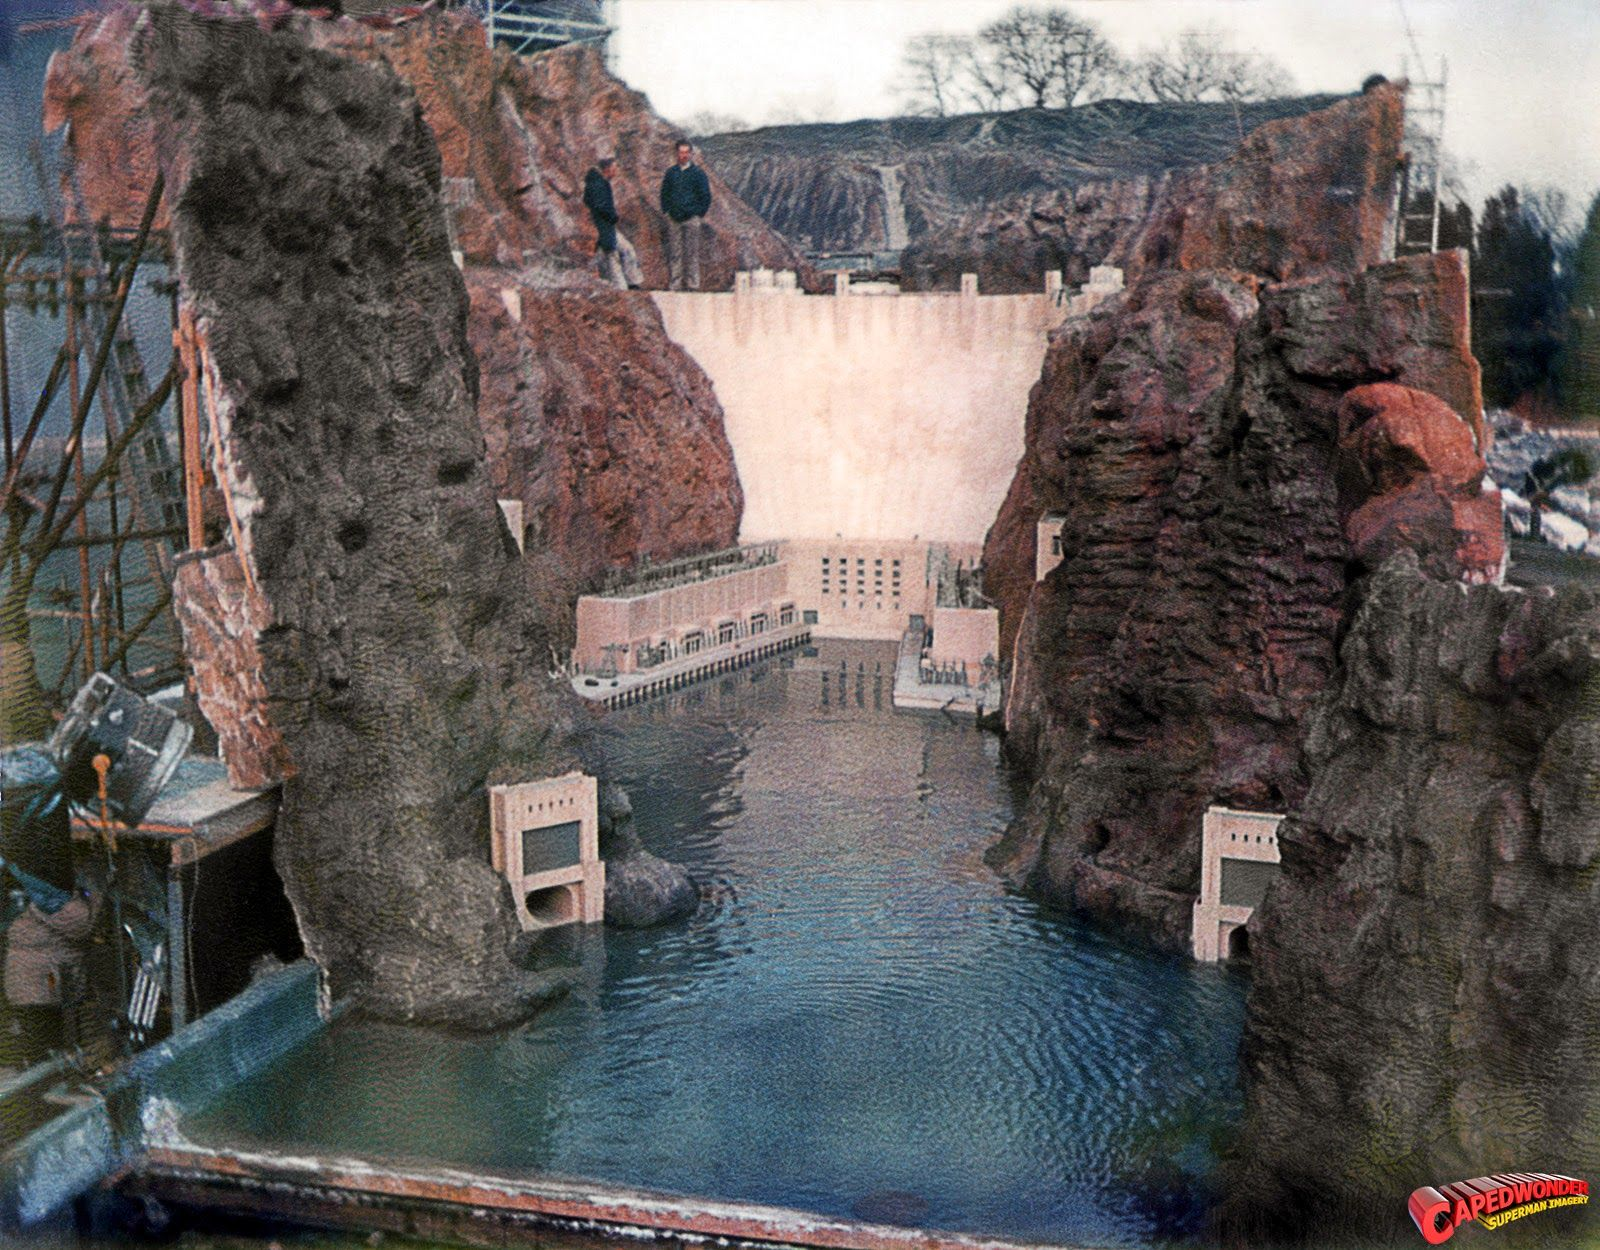 The large Hoover Dam miniature on the Pinewood backlot